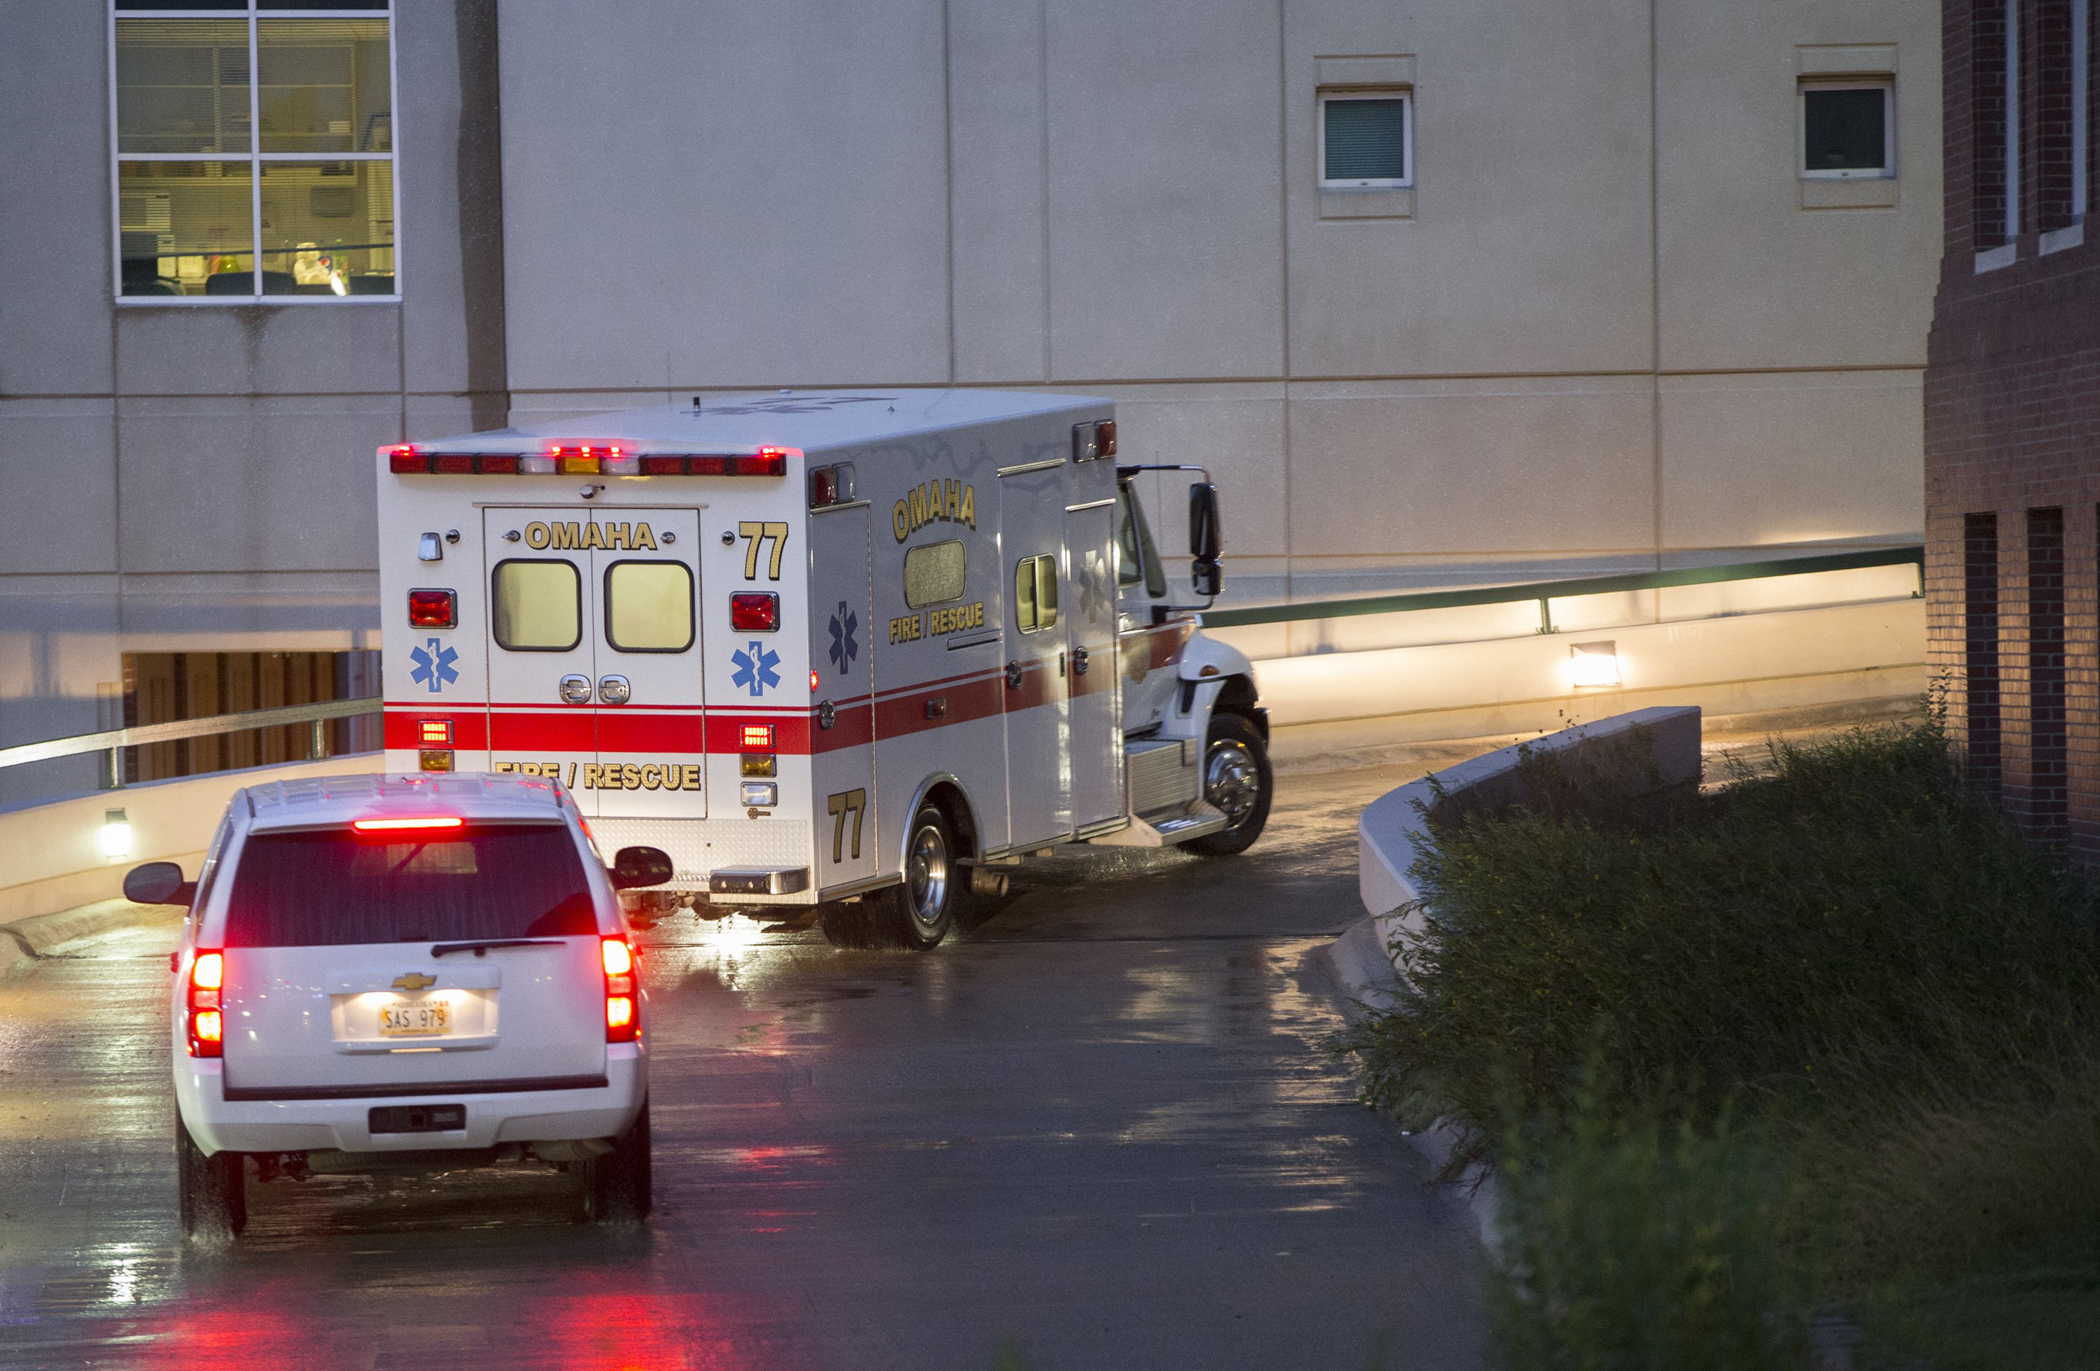 The ambulance transporting Dr. Rick Sacra, 51, who was infected with Ebola while serving as an obstetrician in Liberia, arrives to the Nebraska Medical Center in Omaha, Neb., Sept. 5, 2014.